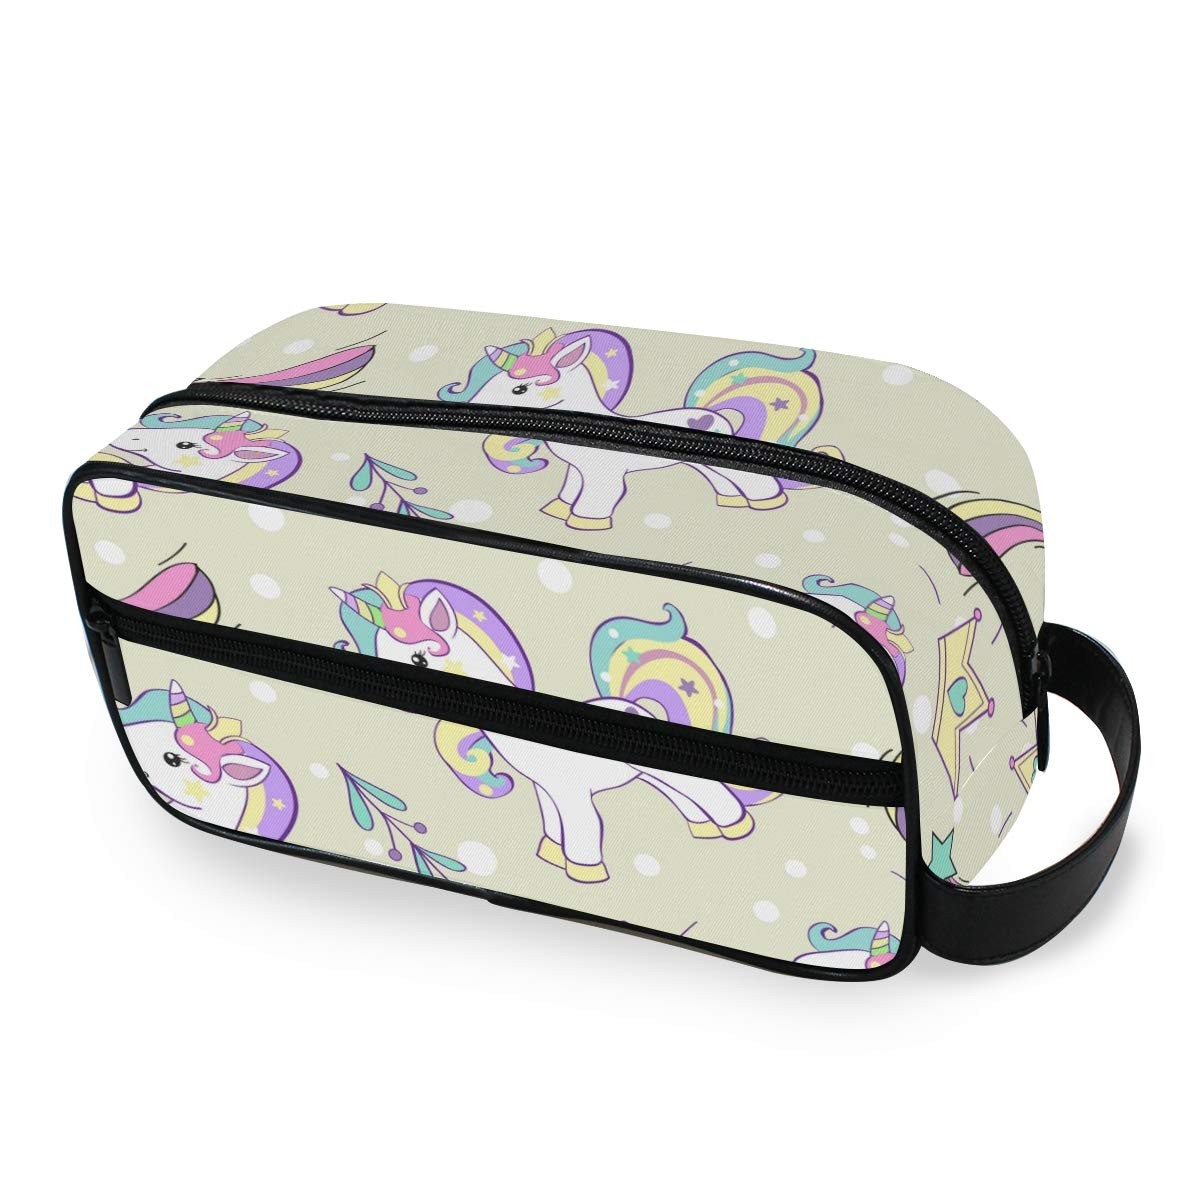 SIMAAC Cosmetic Bag Waterproof Portable Makeup Bag Unicorn Horse Rainbow Crown Toiletry Bag Multifunction Travel Case Organizer for Cosmetics Makeup Brushes Toiletry Jewelry Digital Accessories